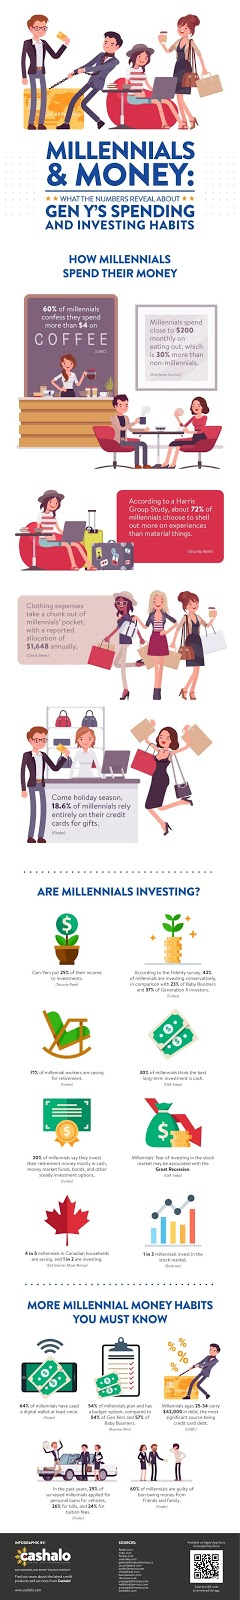 Millennials and Money: What the Numbers Reveal About Gen Y's Spending and Investing Habits #infographic